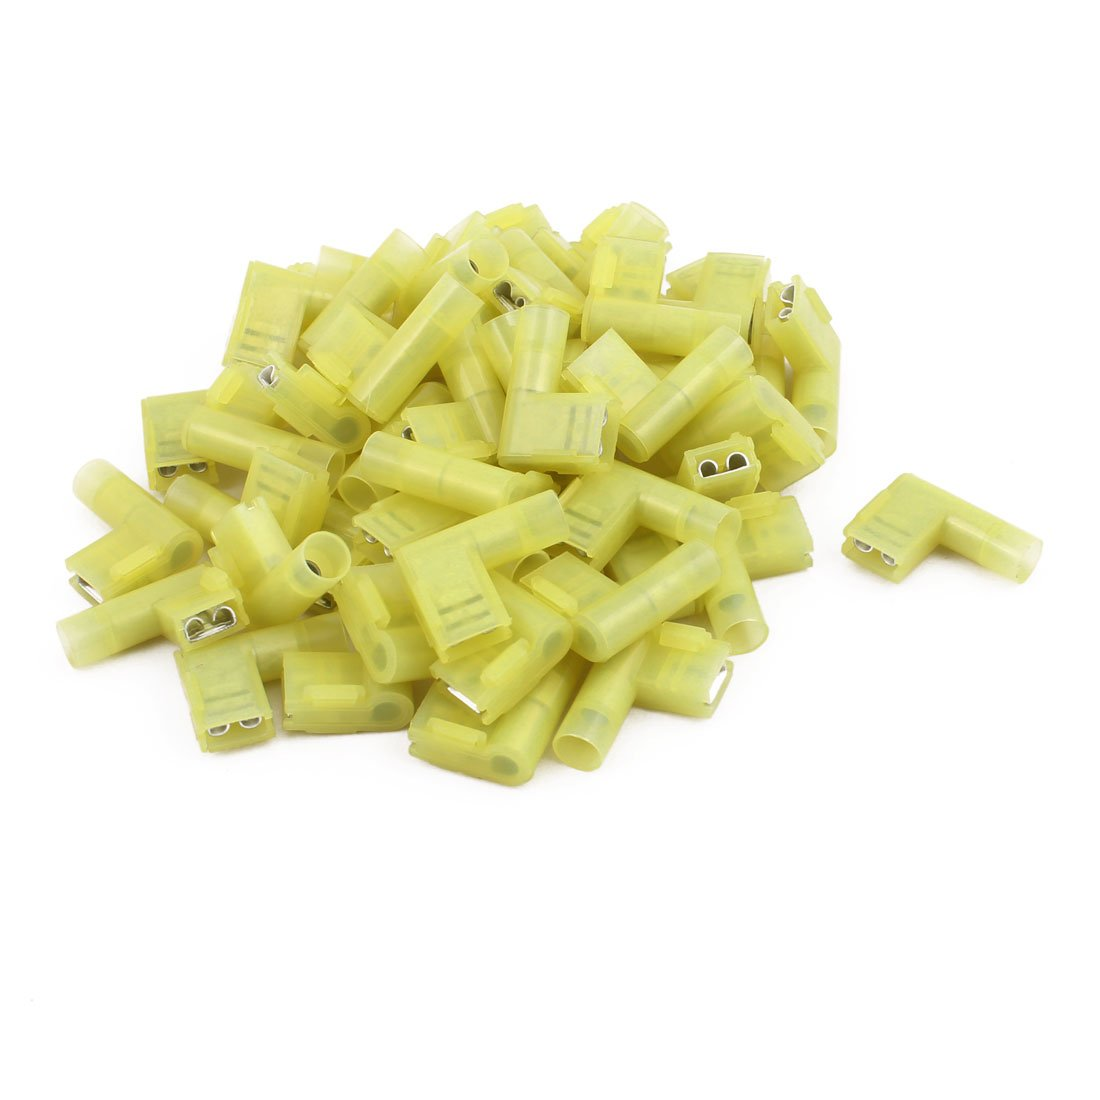 uxcell 50Pcs Flag Crimp Terminals Female Nylon Fully Insulated Wire Connectors Yellow